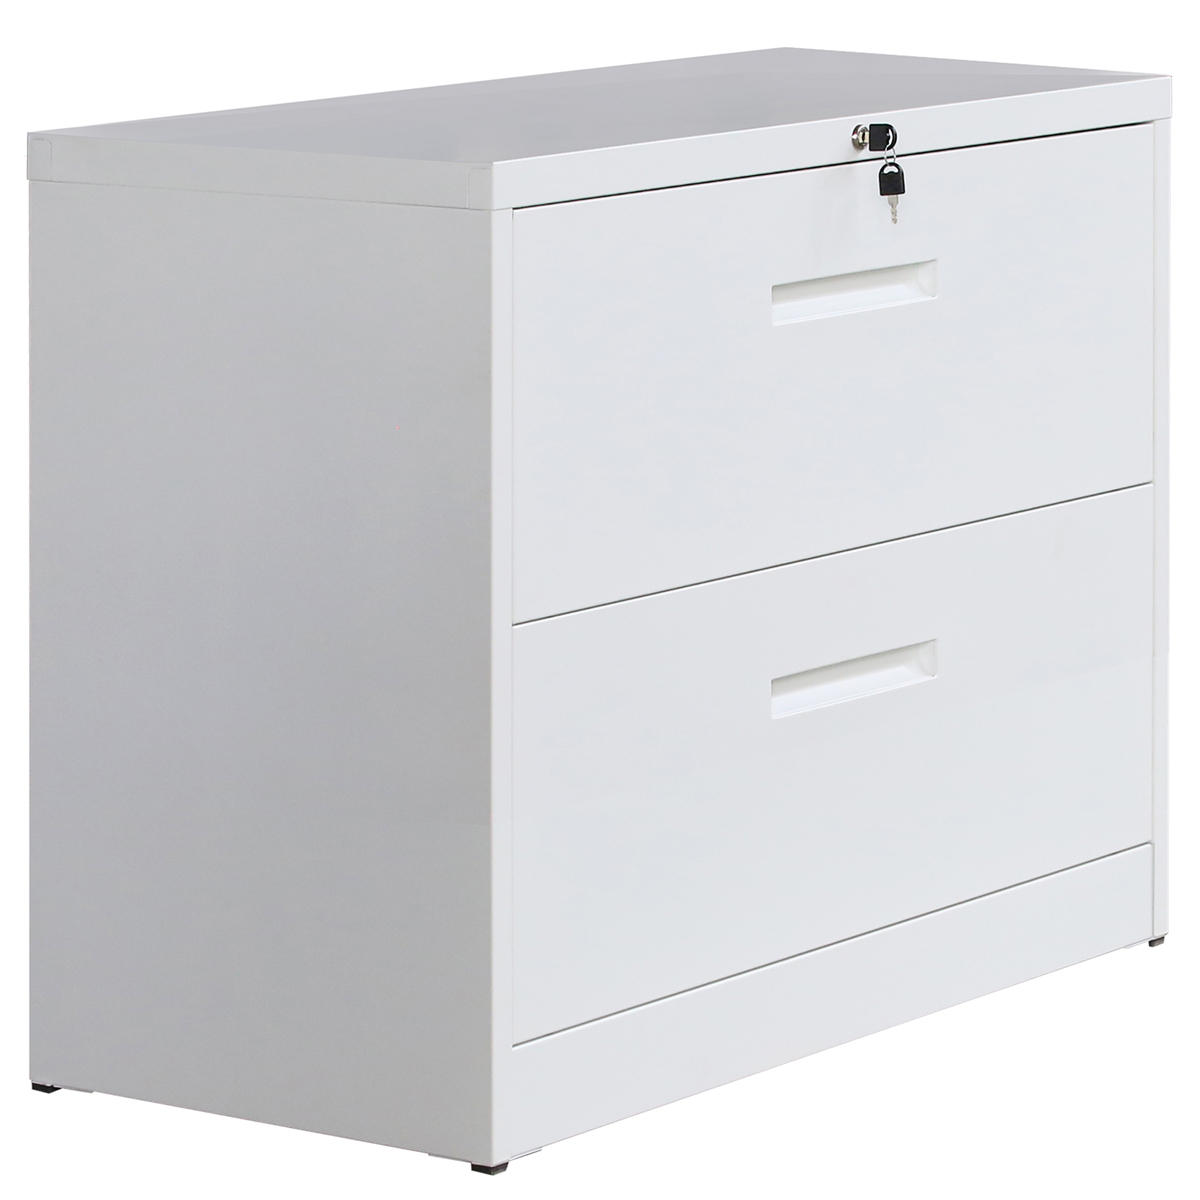 2 drawers office file cabinet lockable metal lateral file document rh banggood com